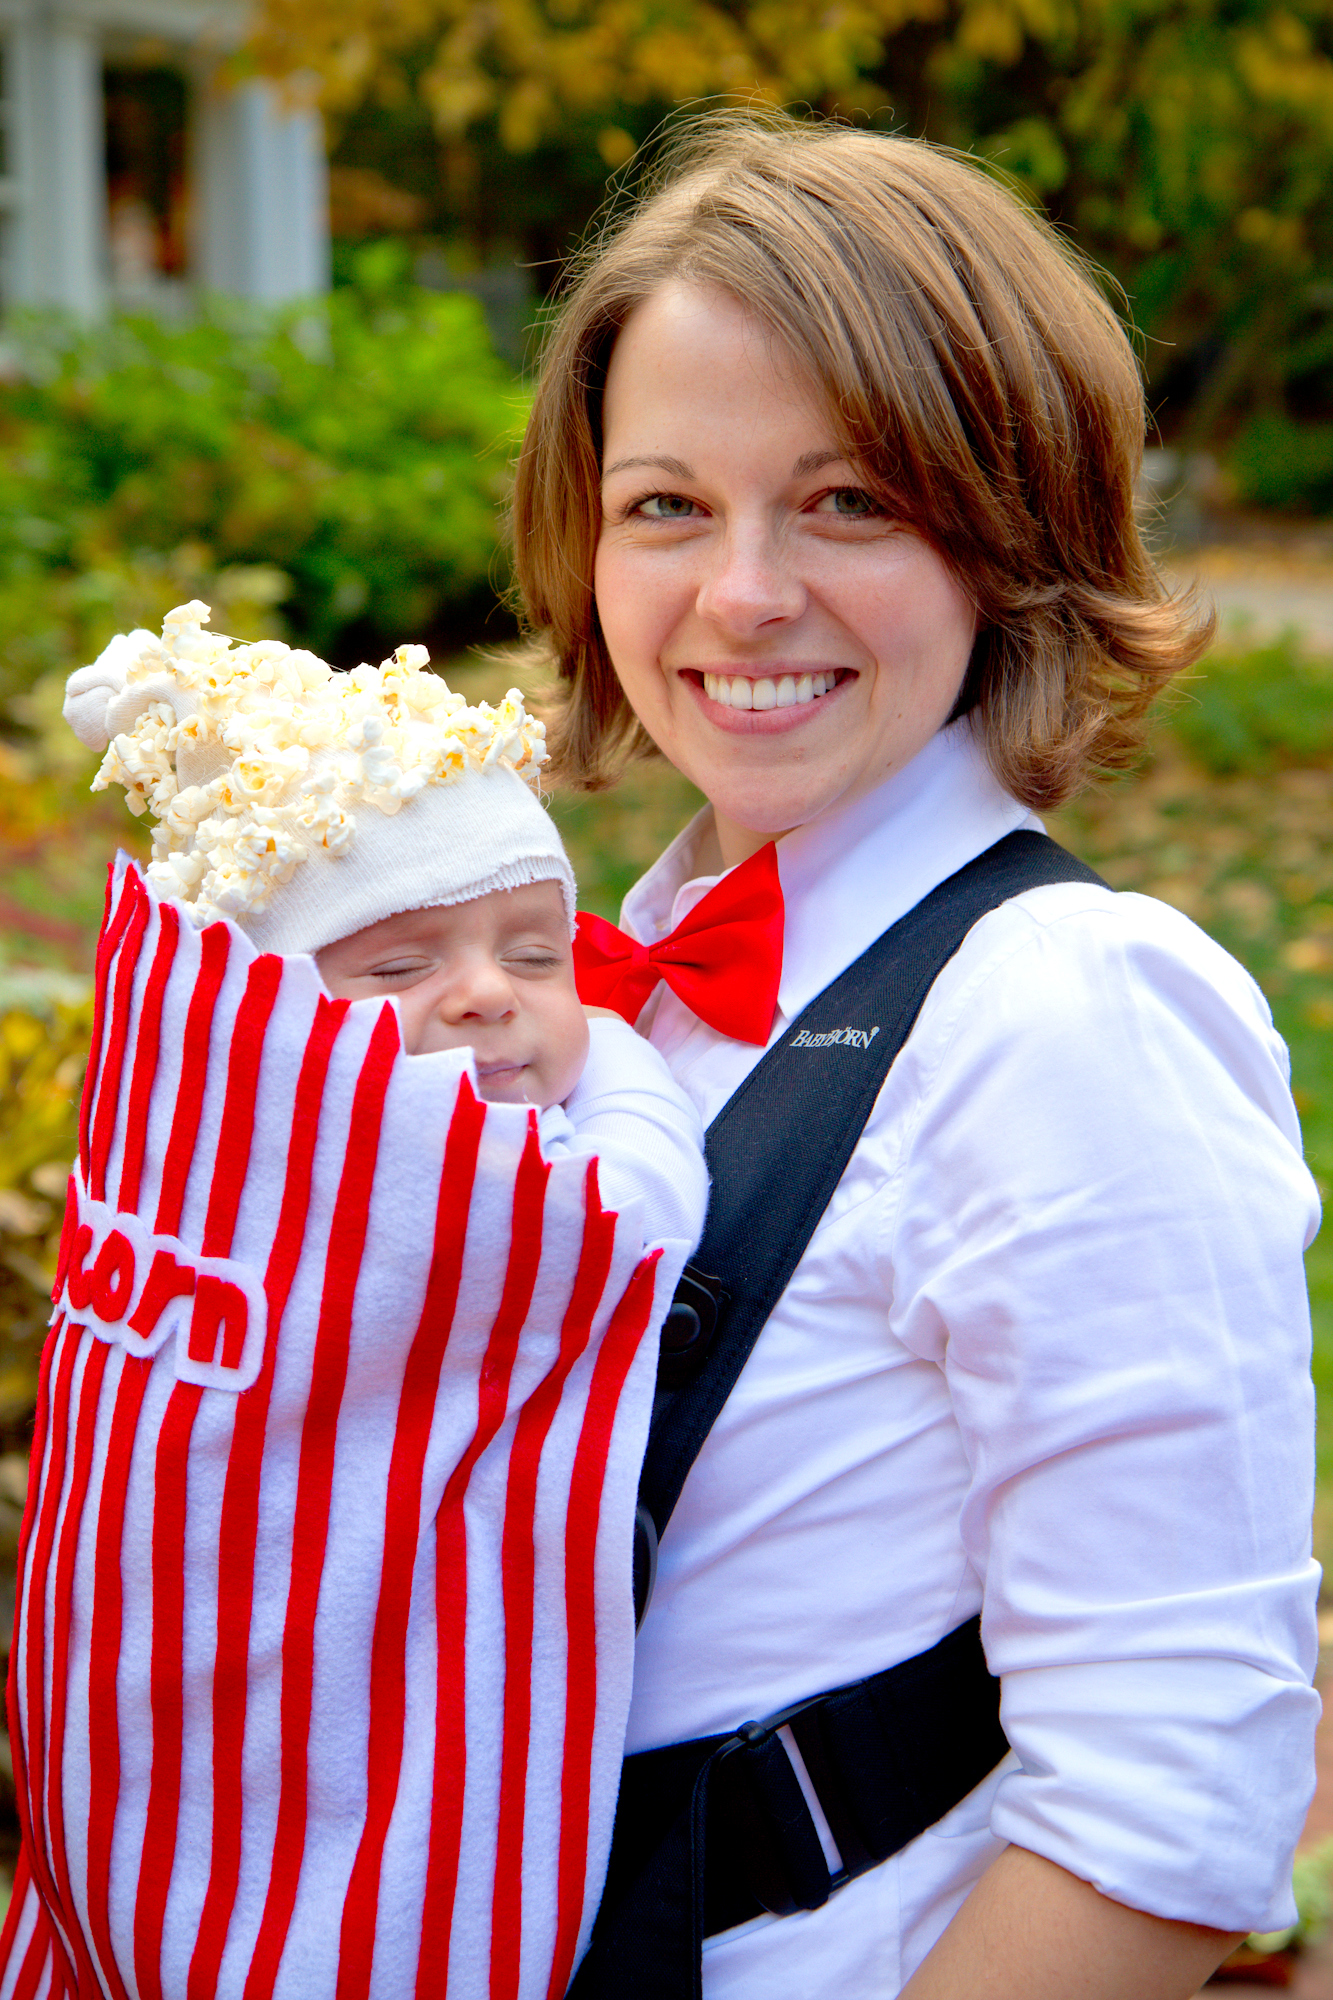 15 hilarious baby-wearing costume ideas! – make it and love it